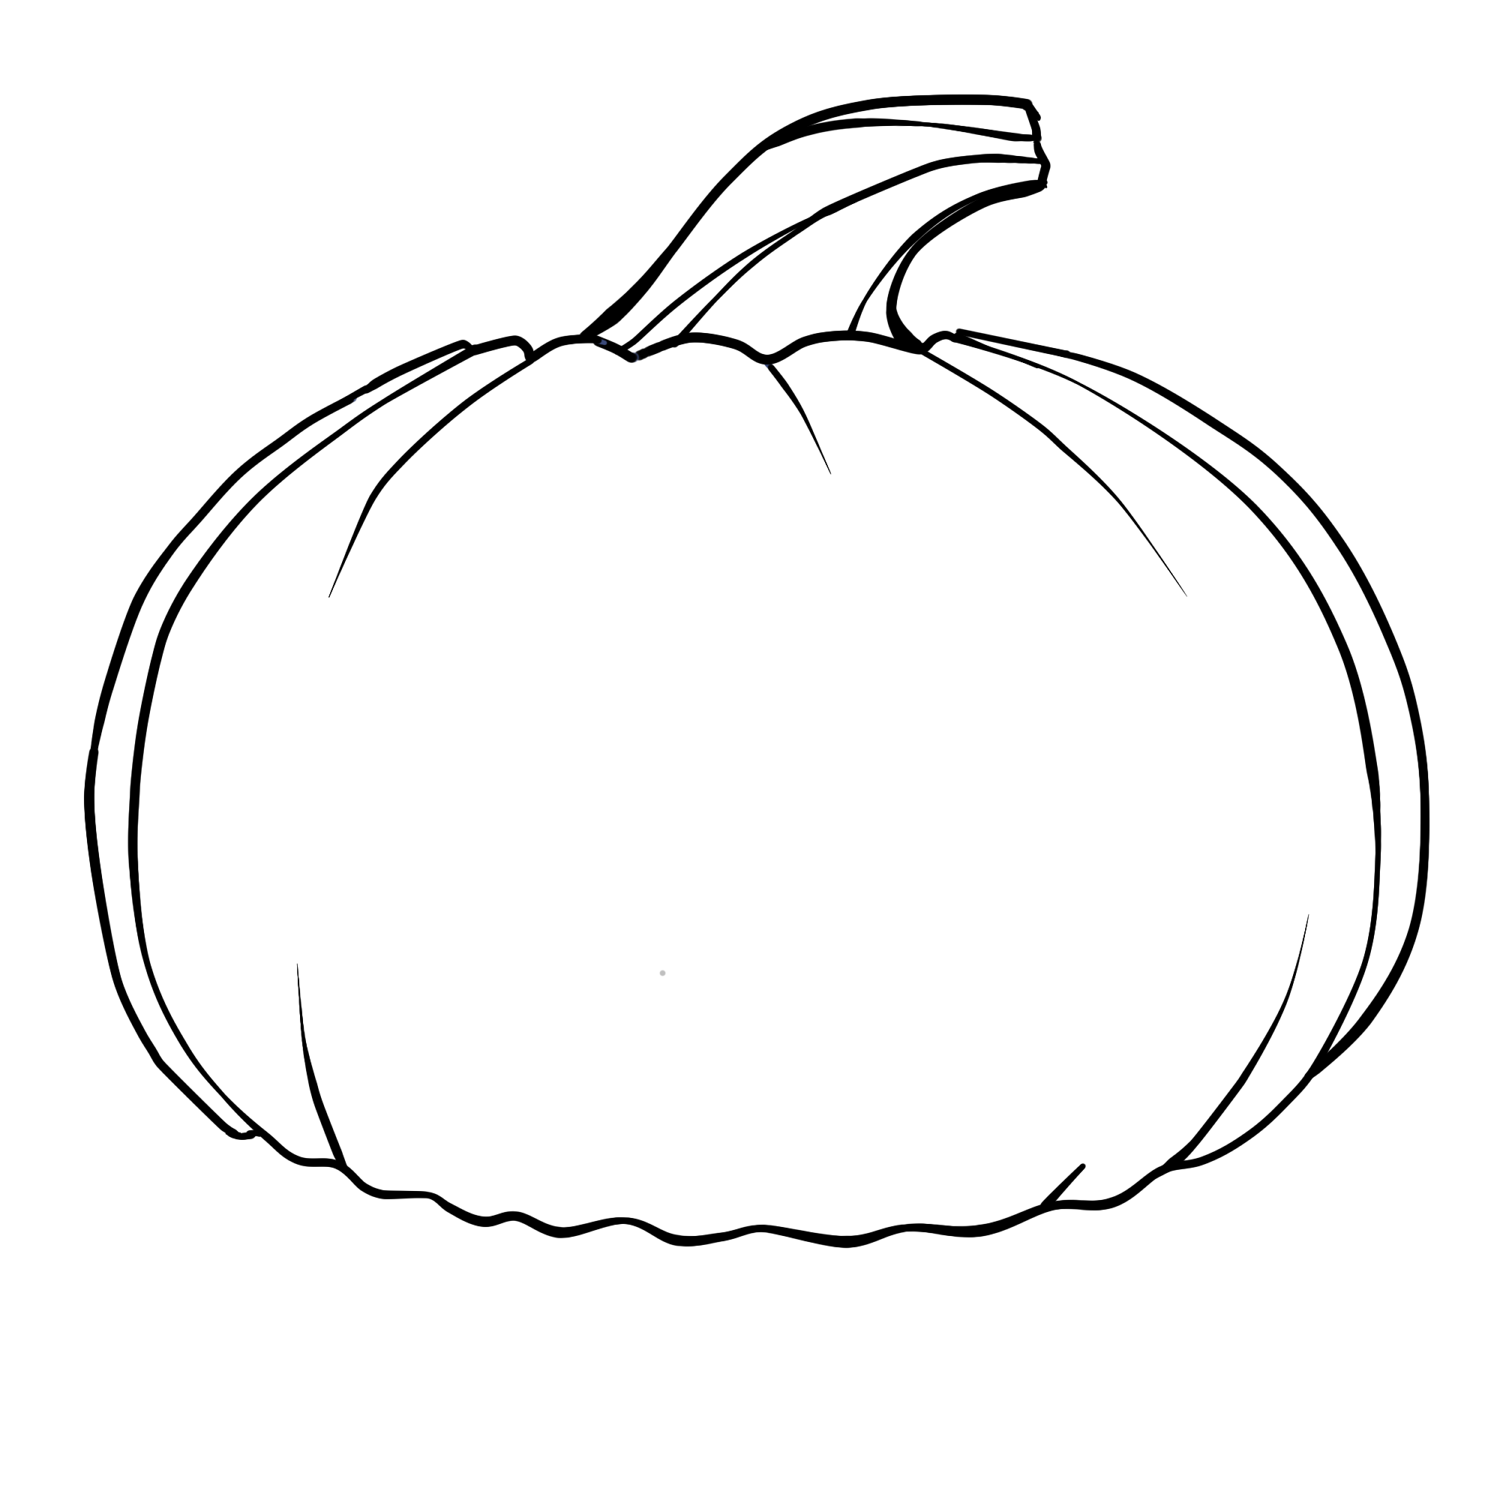 pattern pumpkin coloring pages - photo#22